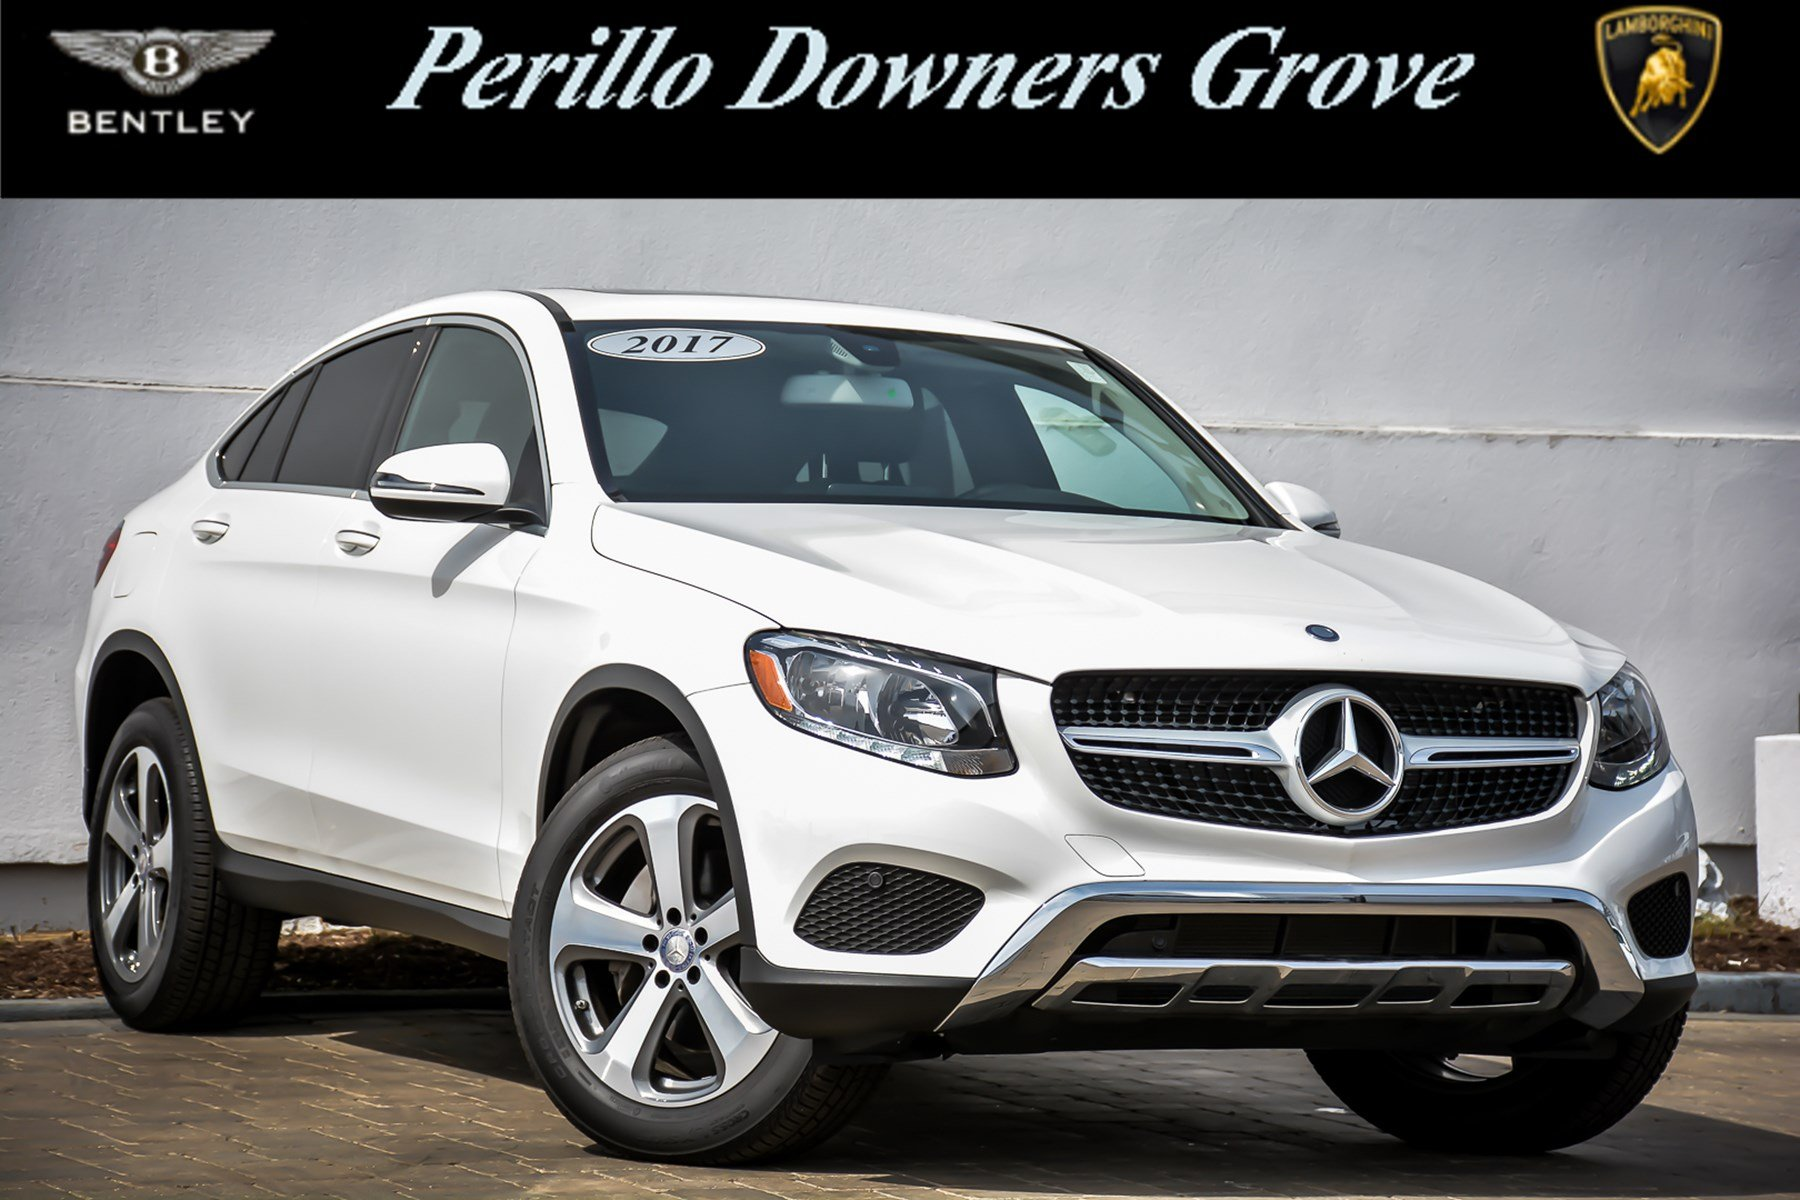 Pre Owned 2017 Mercedes Benz GLC GLC 300 Sport Utility in Downers